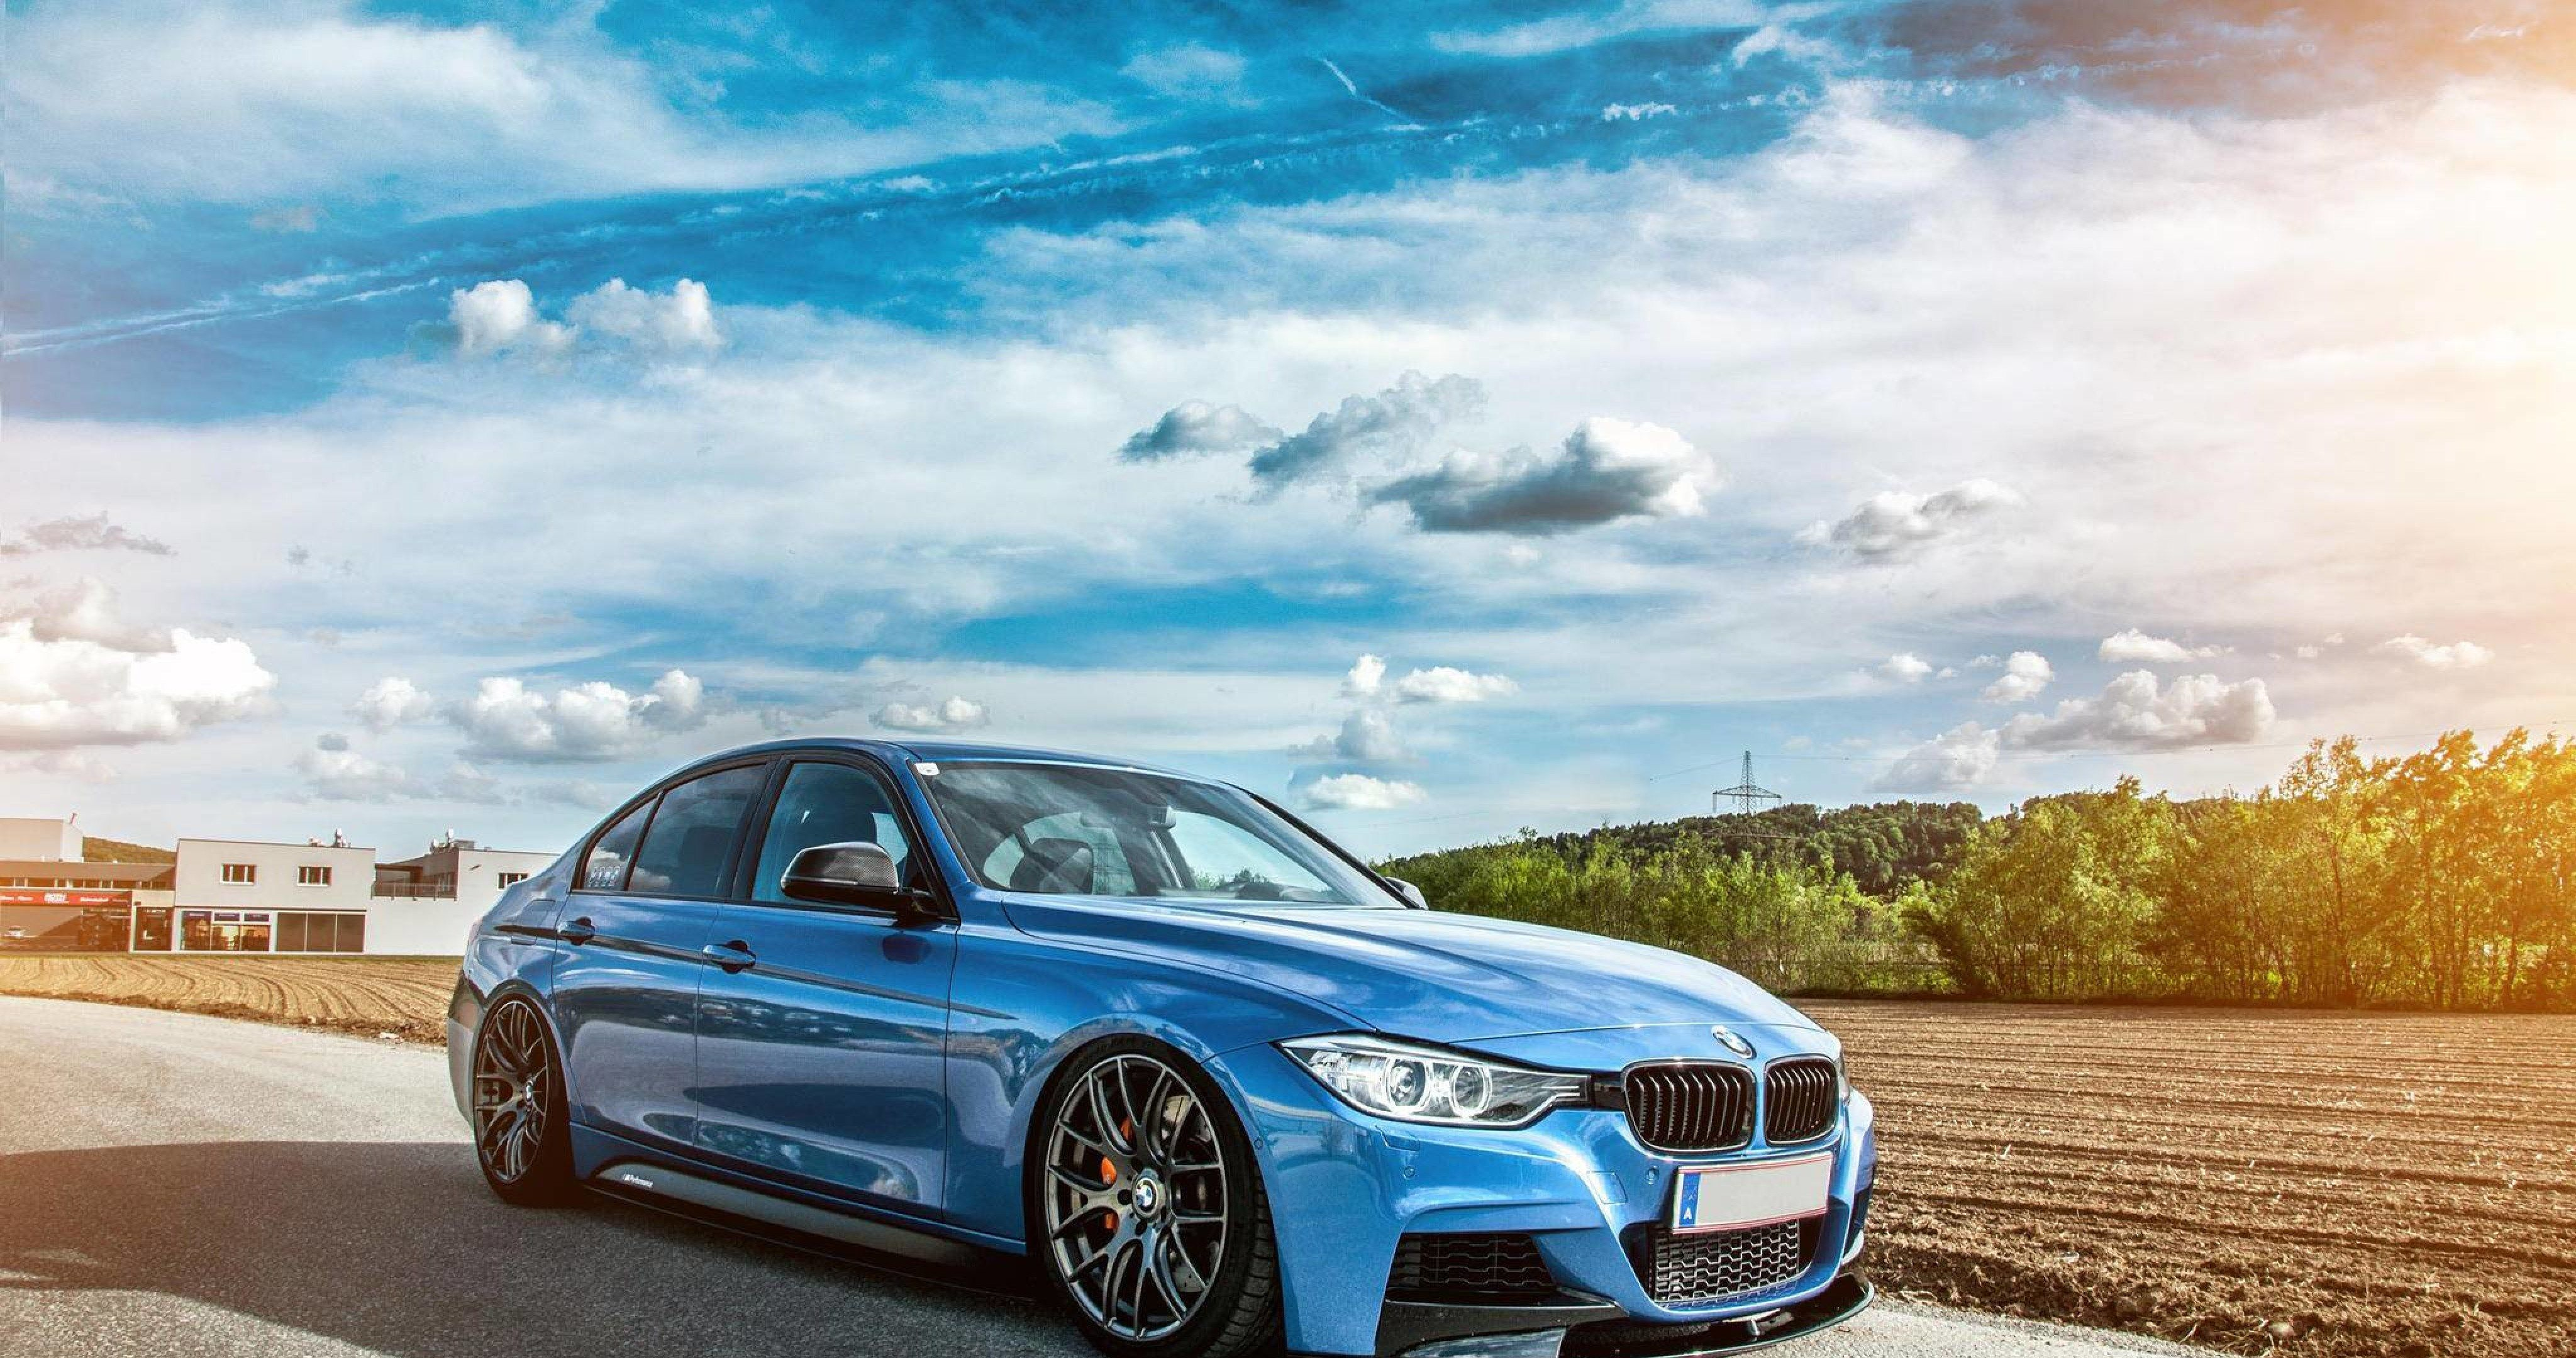 BMW F30 Wallpapers   Top BMW F30 Backgrounds   WallpaperAccess 4096x2160